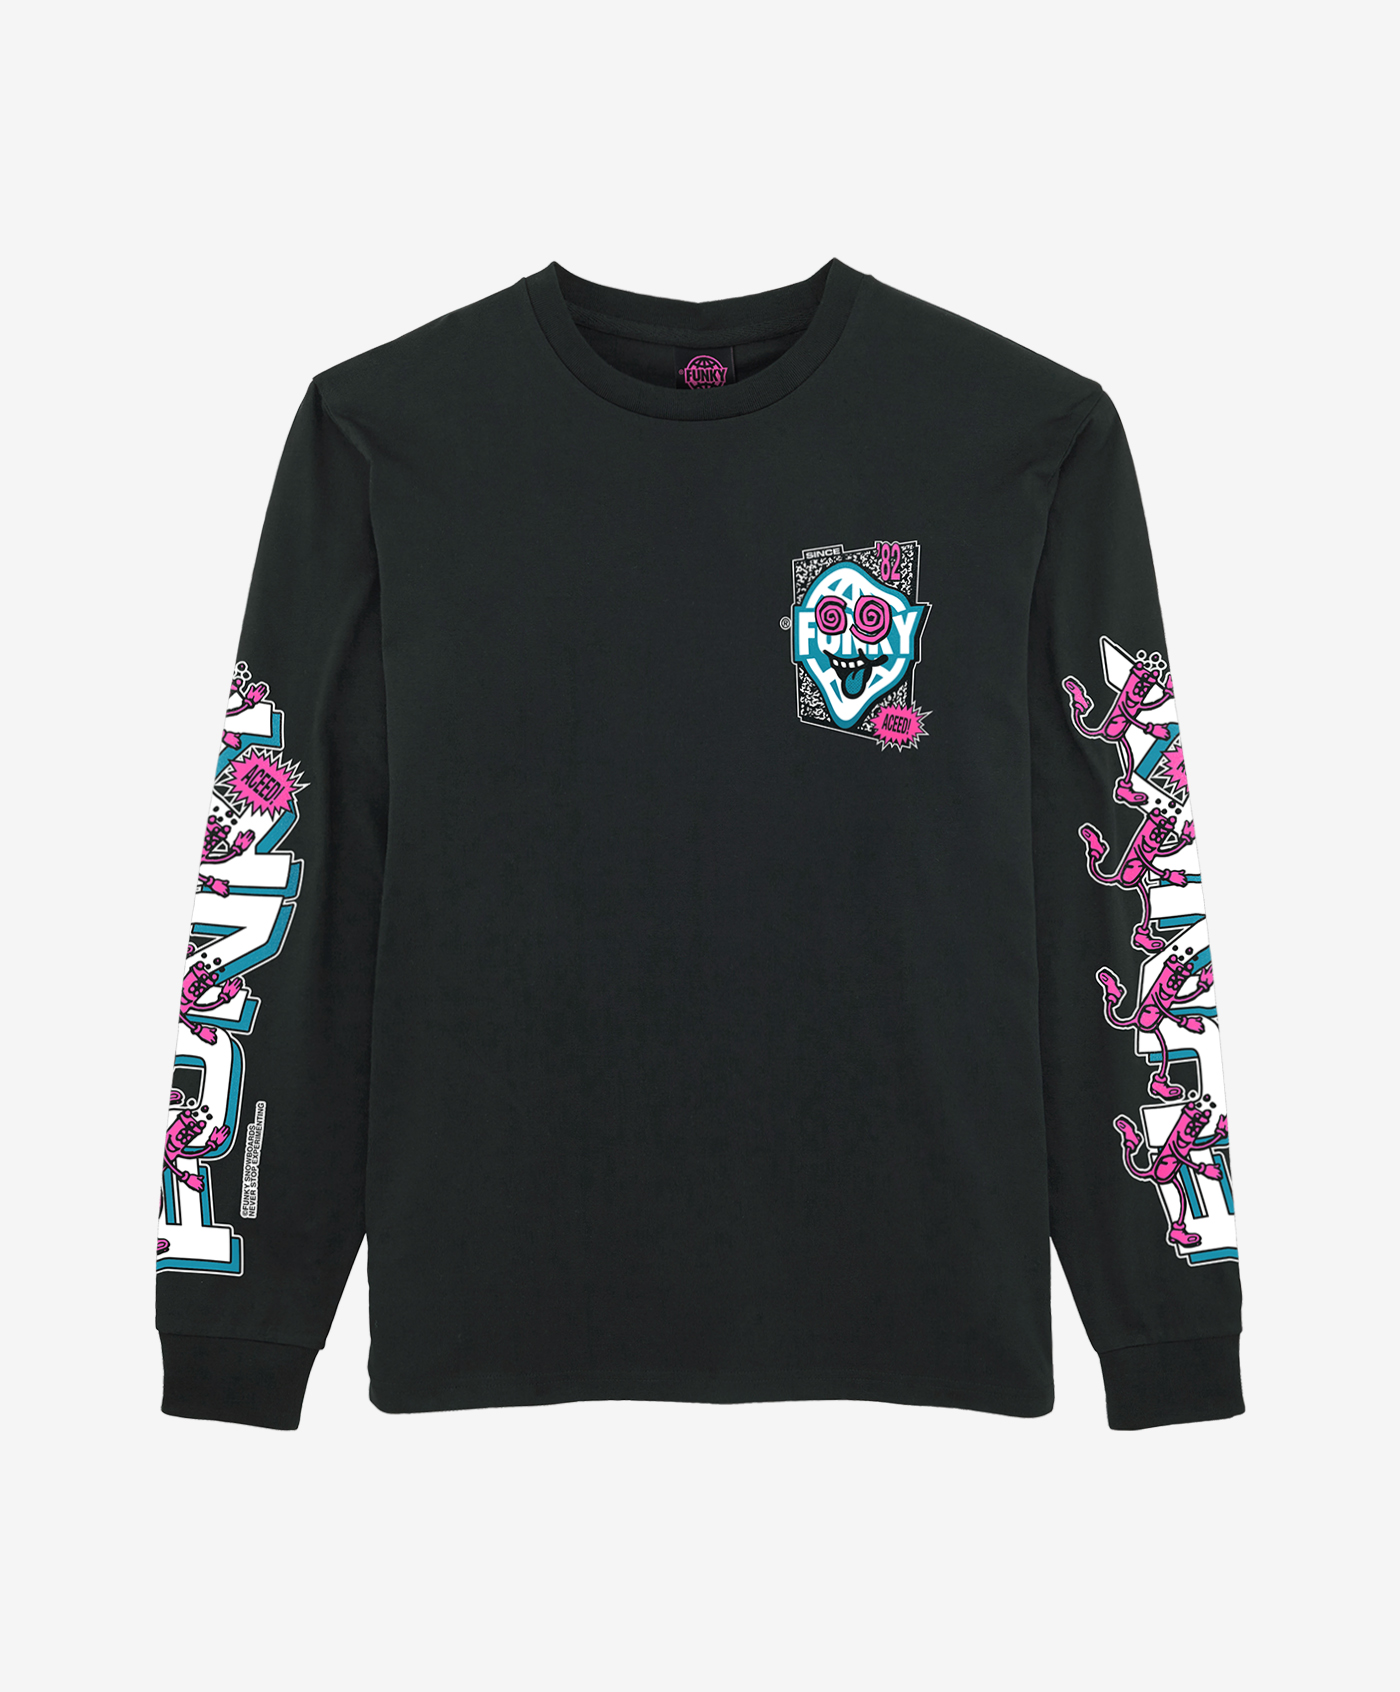 funky aceed long sleeve black front